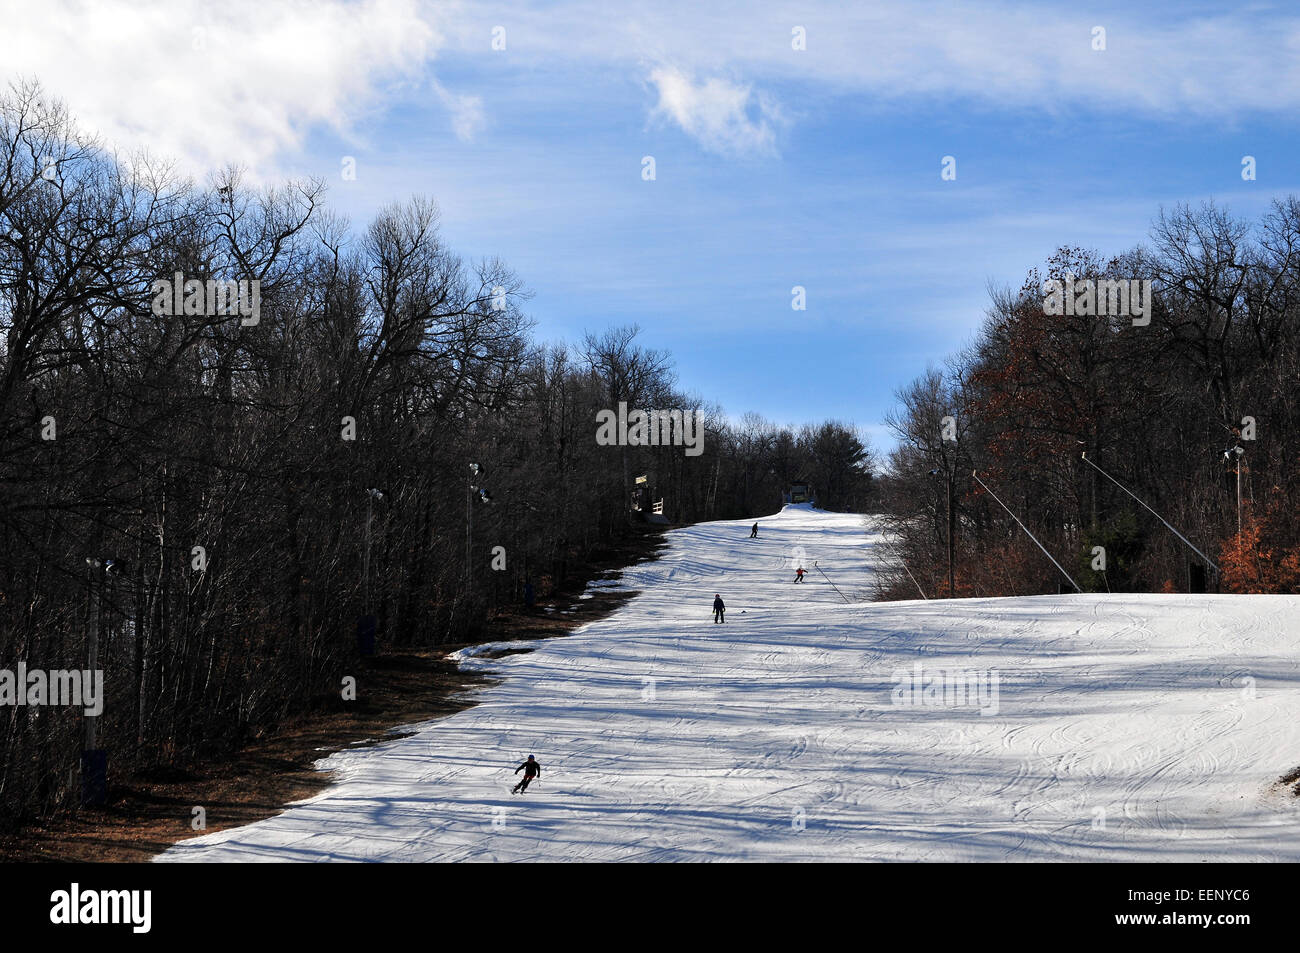 wachusett mountain ski resort in massachusetts, new england, usa